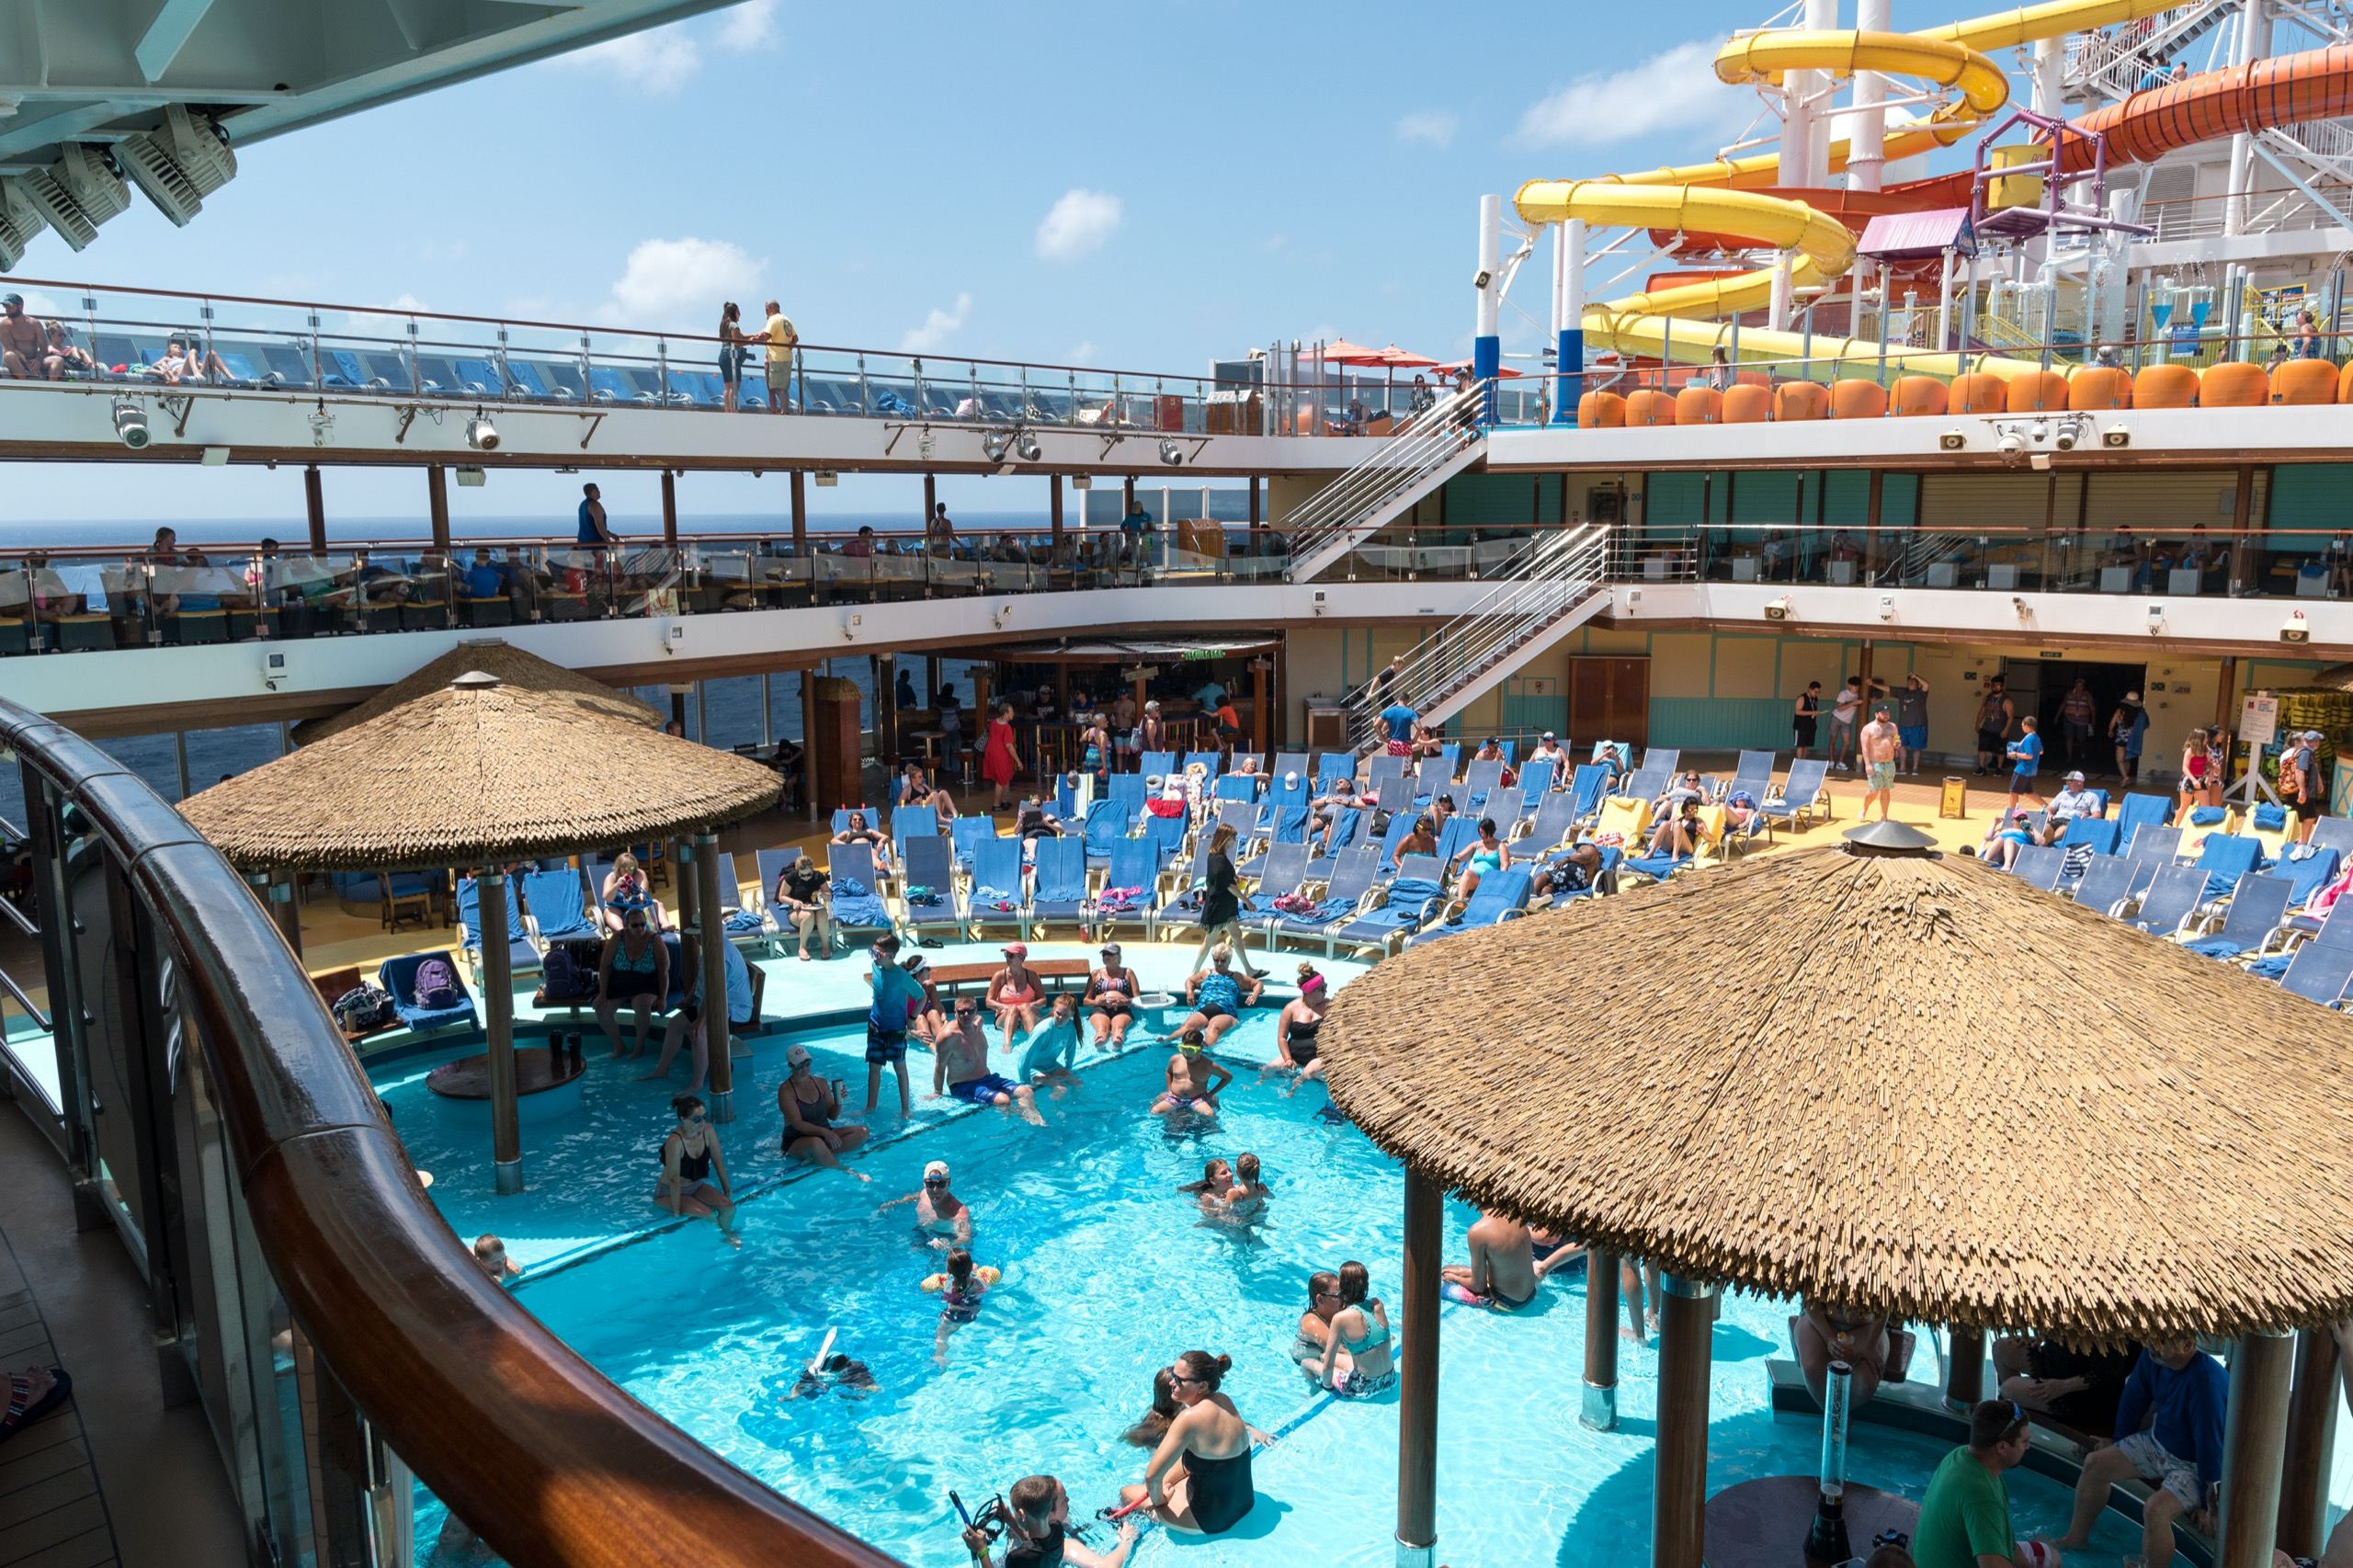 A busy pool deck on a cruise ship with dozens of people in swimsuits. There are two twisting slides on the upper deck.